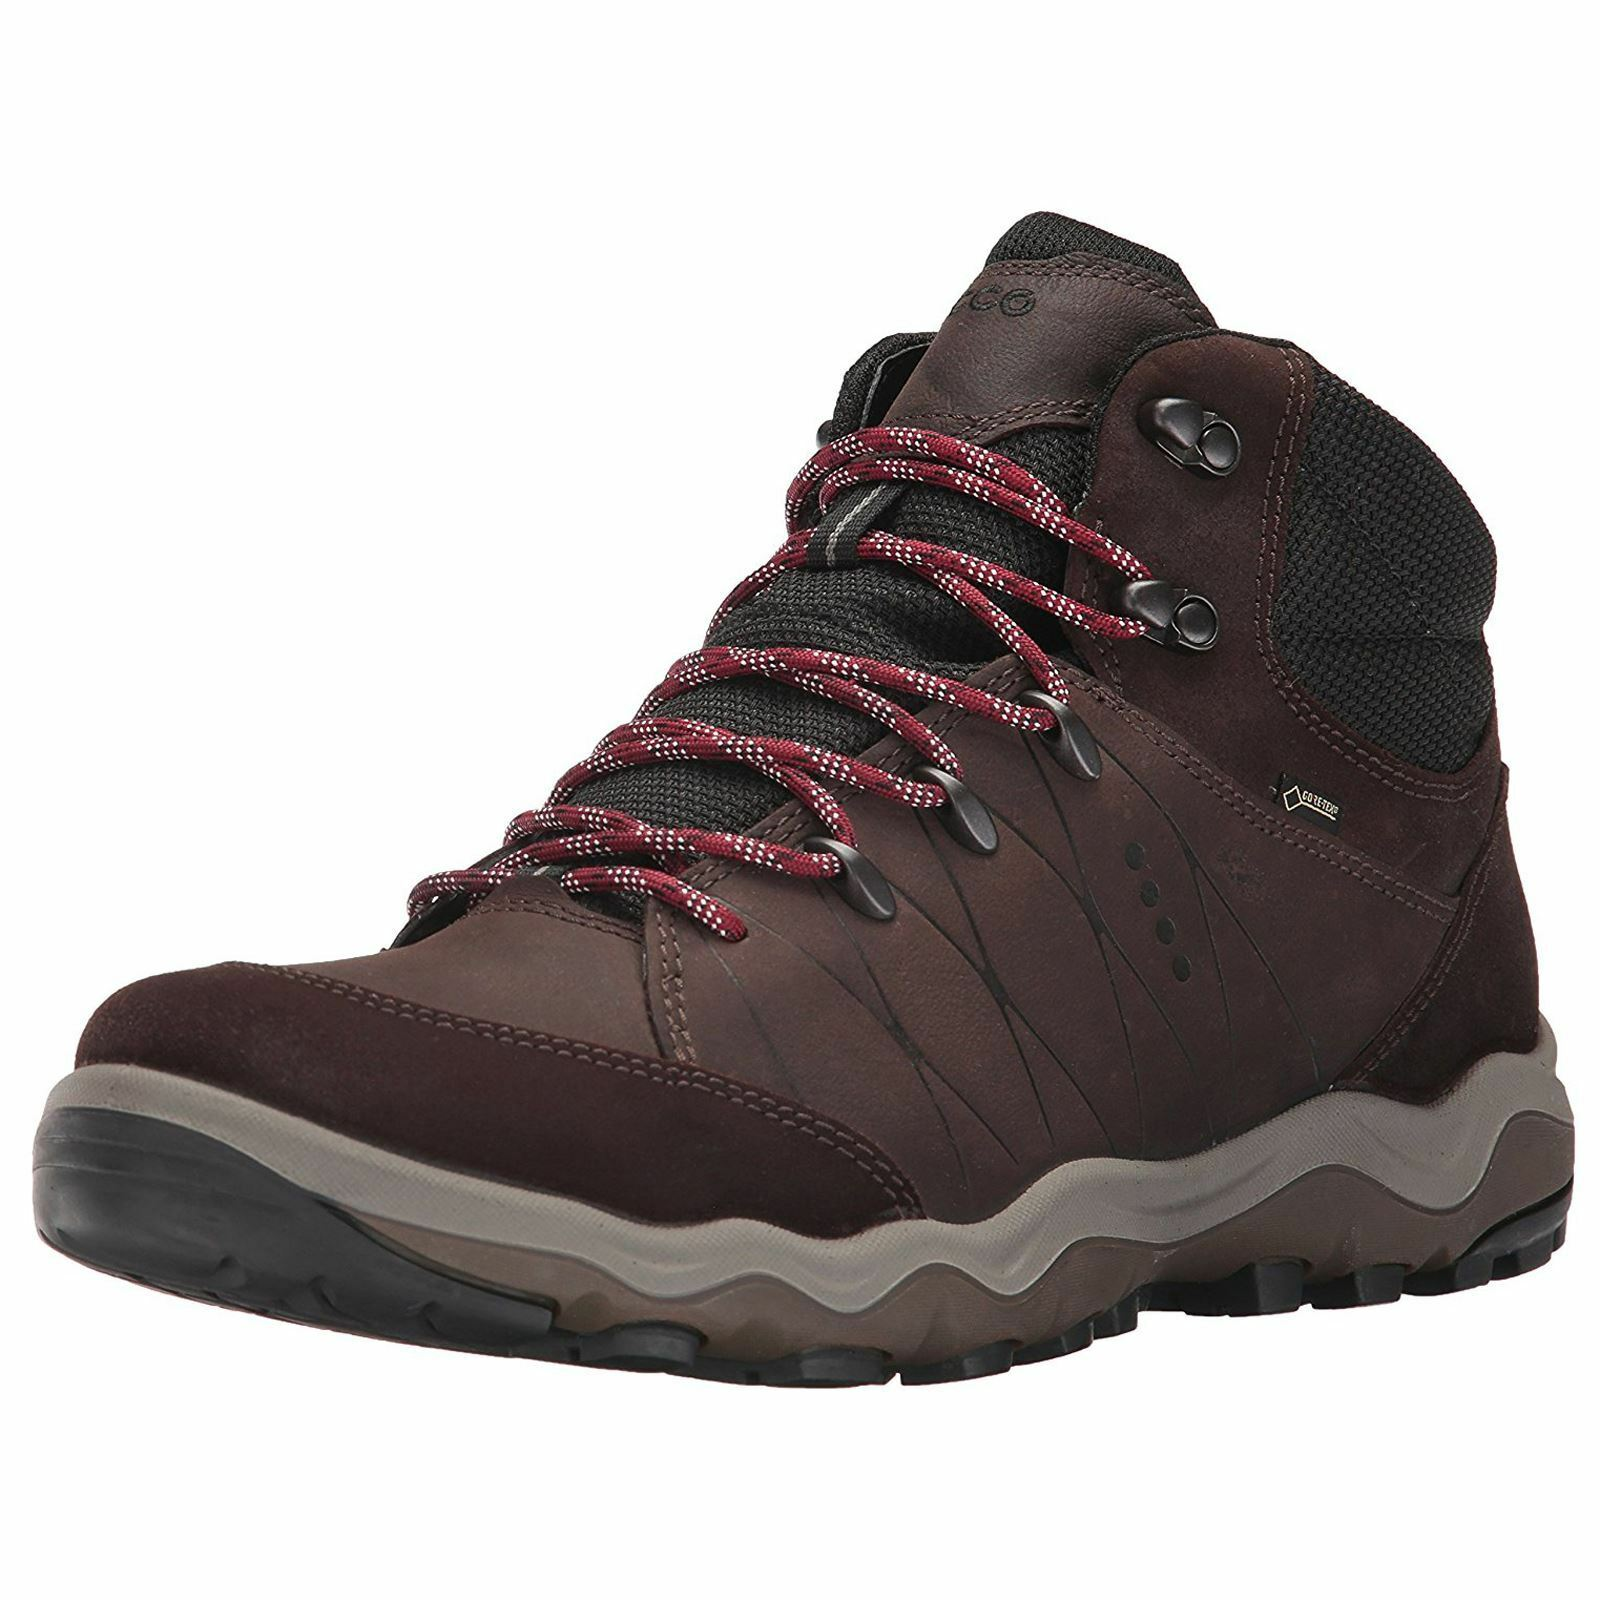 men Ecco GUMBA 2 medio caffè shoes da trekking shoes NUOVE